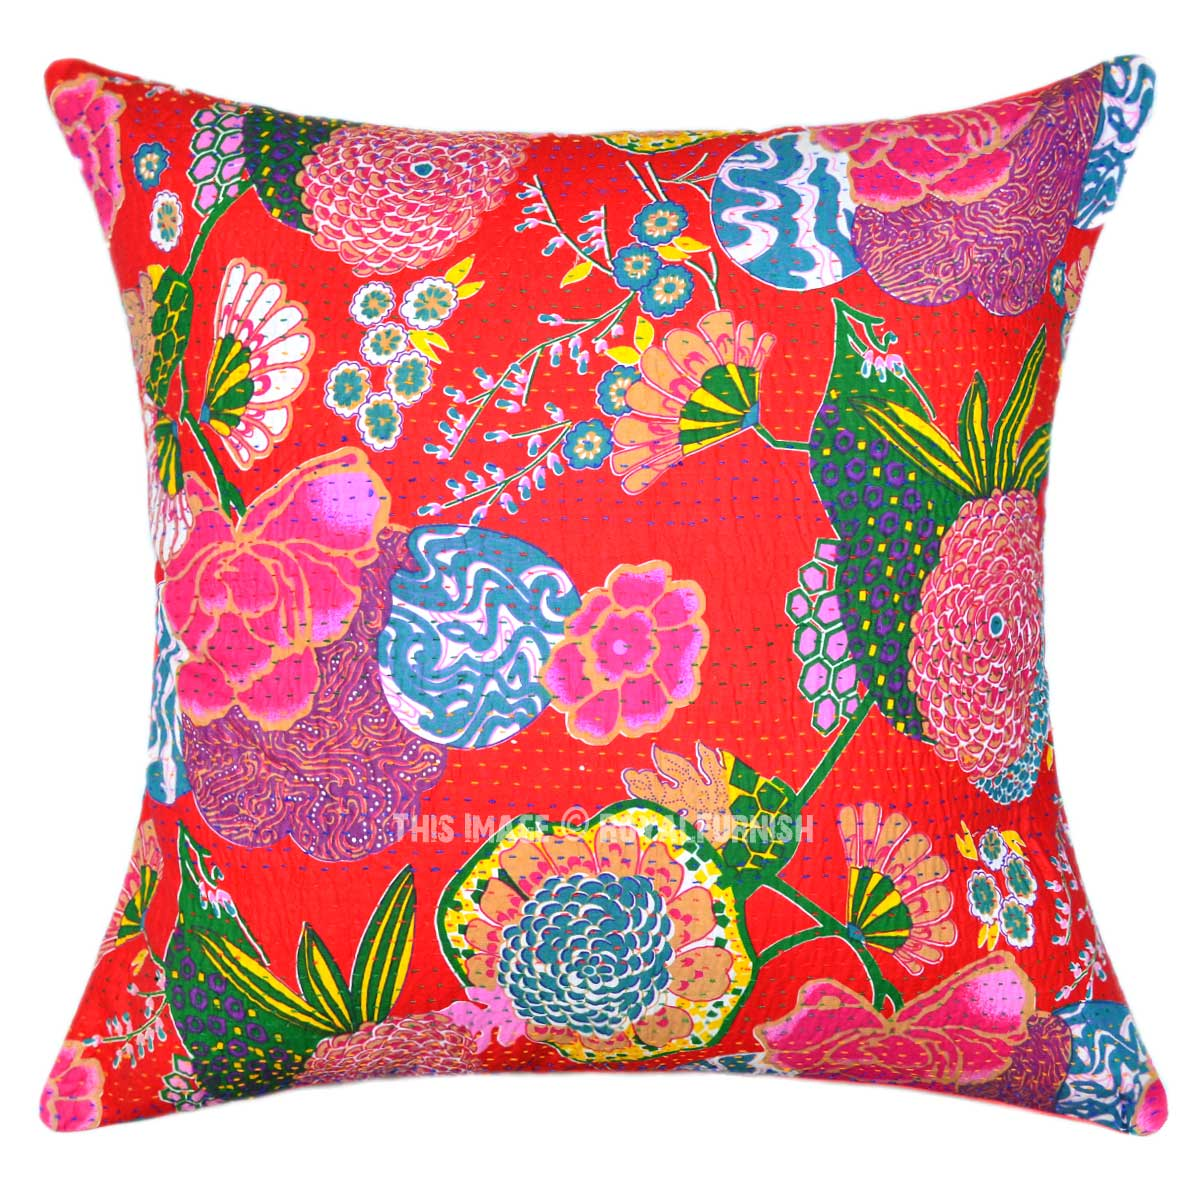 Red Multi Decorative and Boho Accent Tropical Cotton Kantha Throw Pillow Cover 24X24 ...